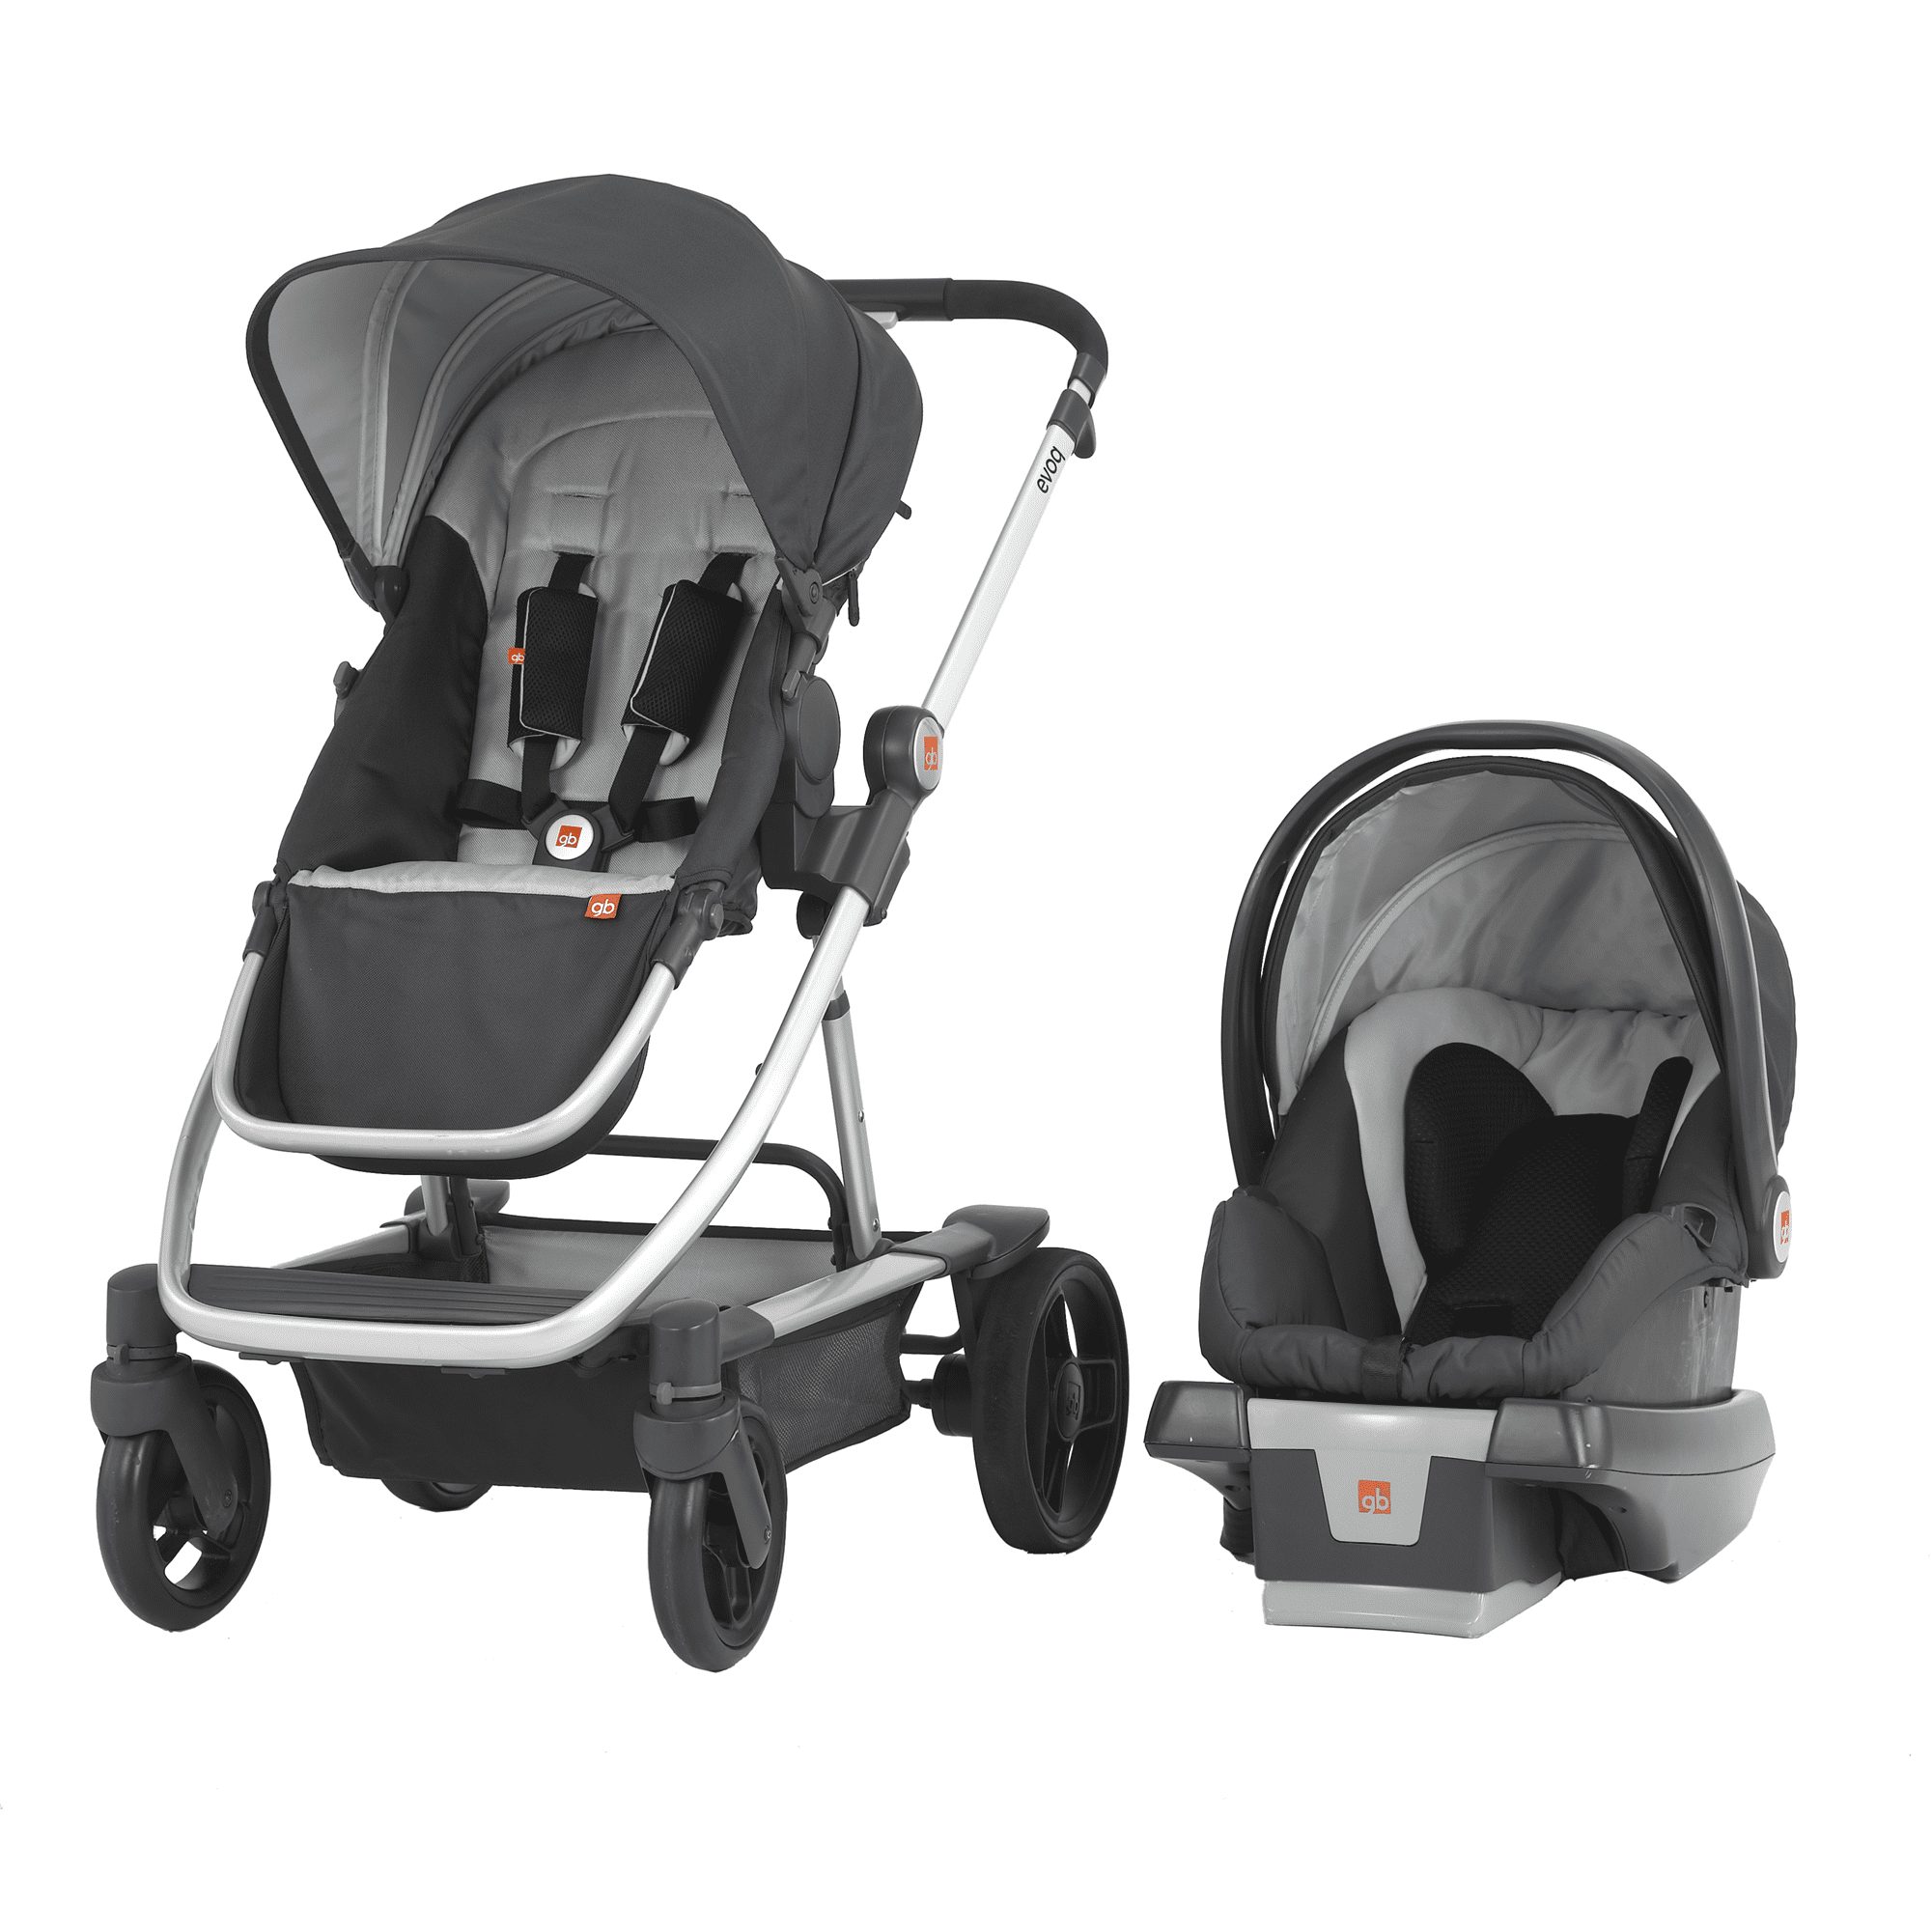 gb Evoc Travel System by GB